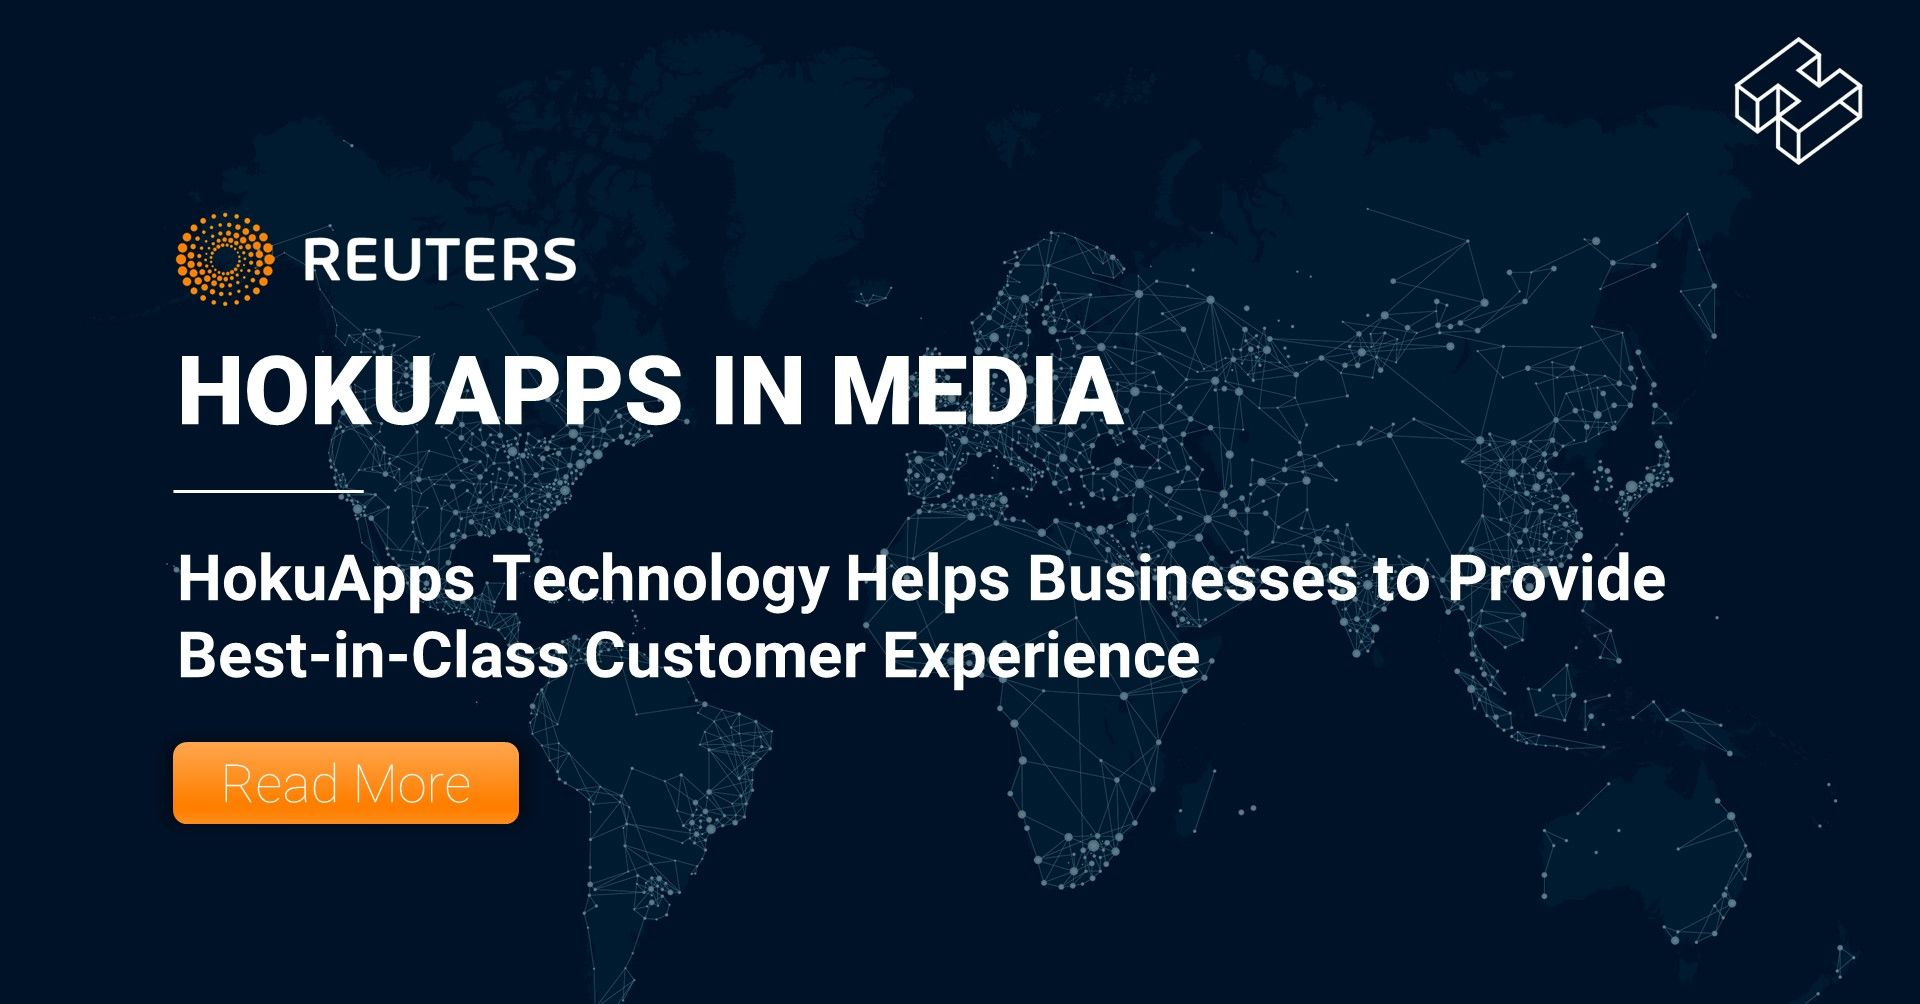 HokuApps Technology Helps Businesses to Provide Best-in-Class Customer Experience